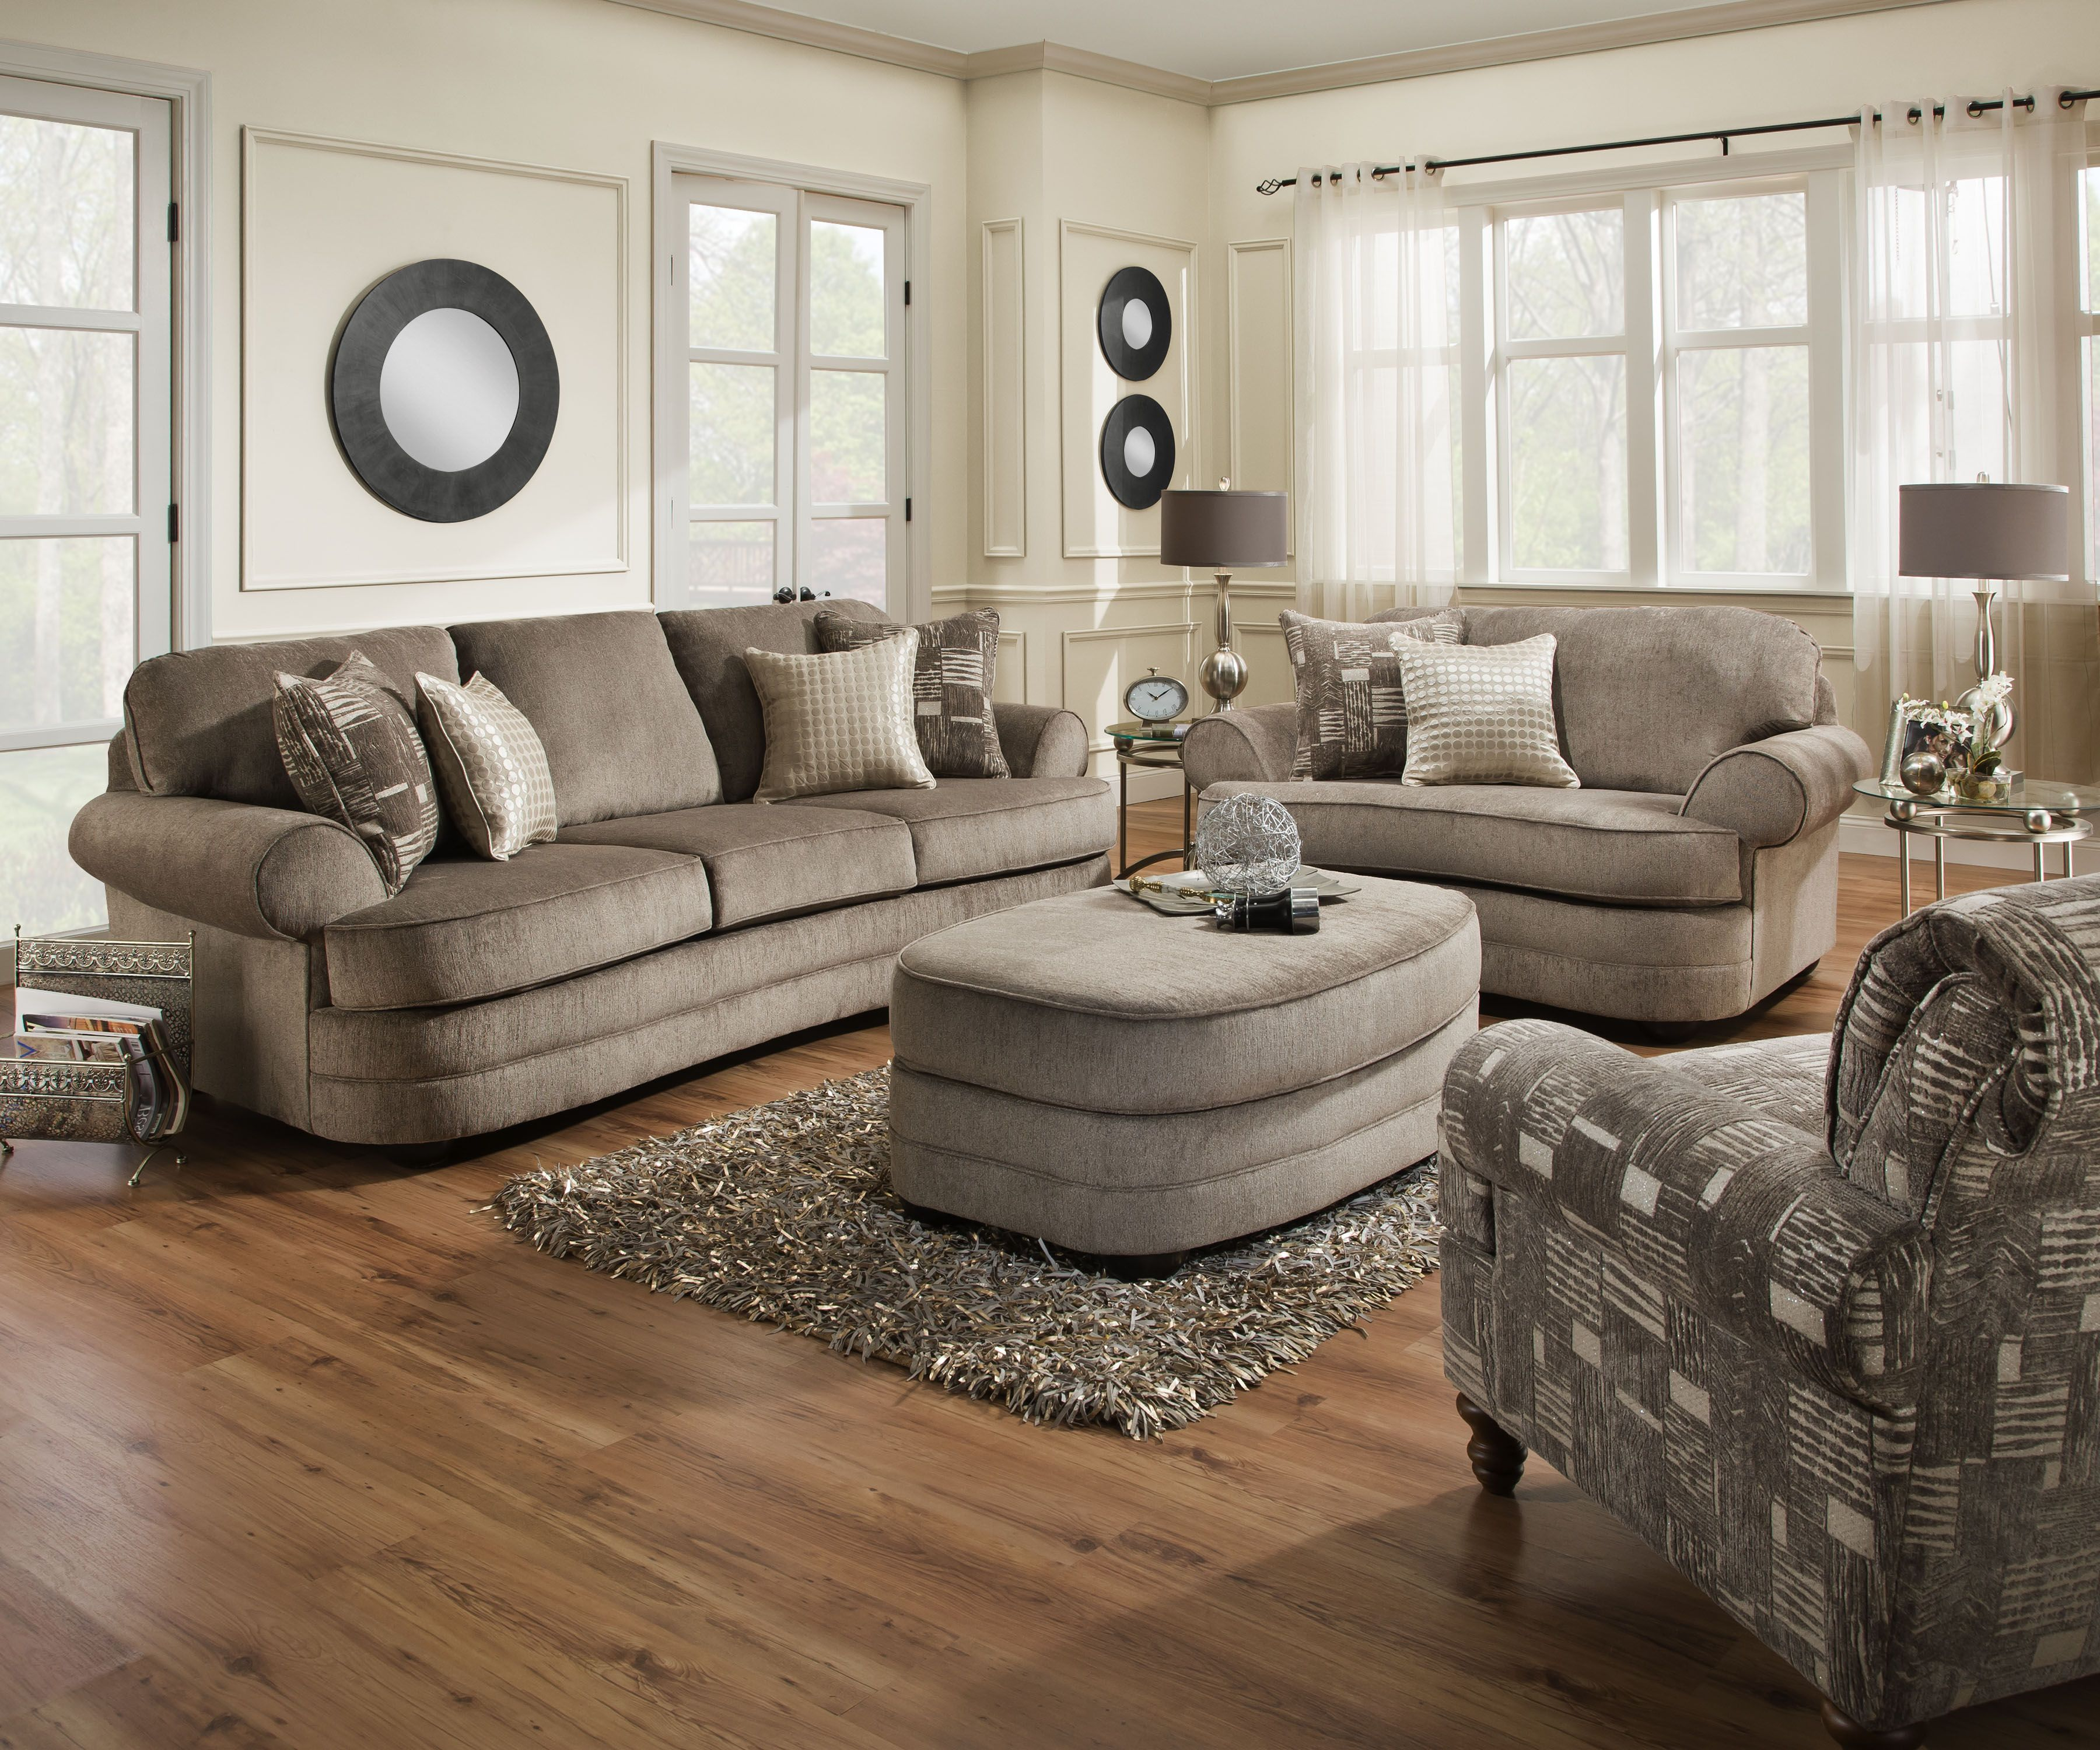 Grandstand Fawn Sofa And Chairu00261/2 With Ottoman And Toss Pillows Beautyrest  By Simmons $1099.00